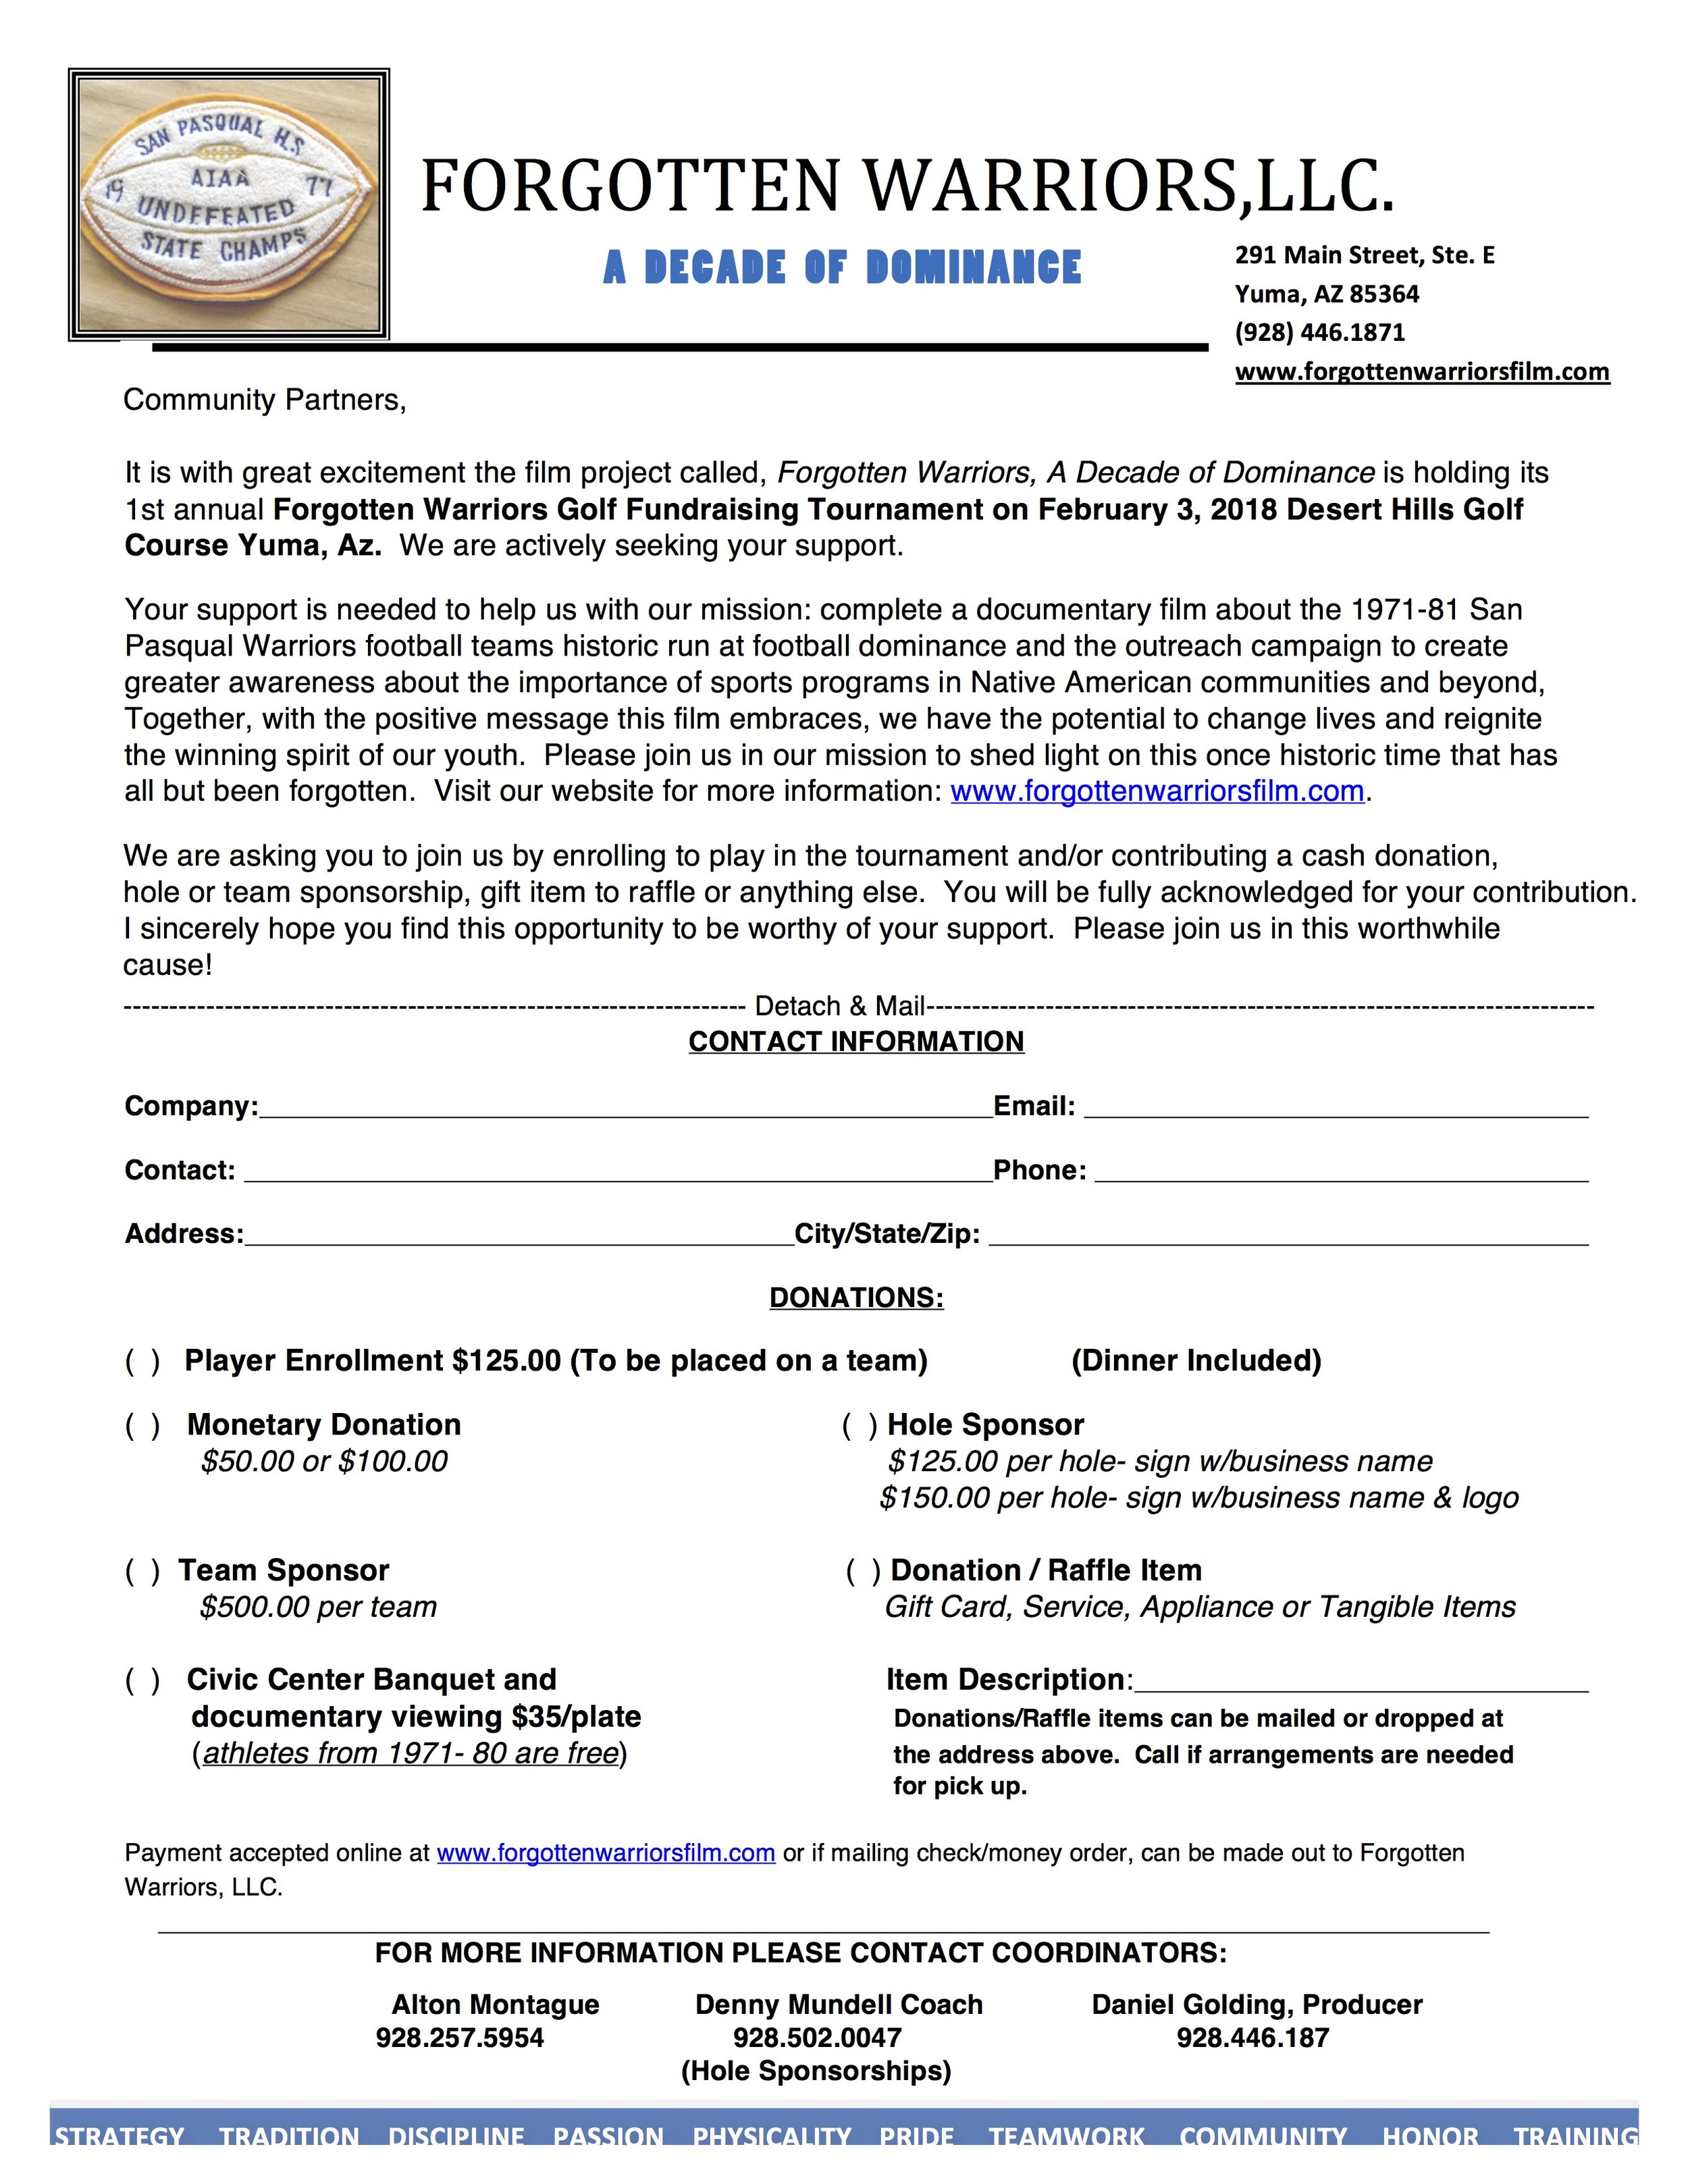 Click on form for downloadable copy